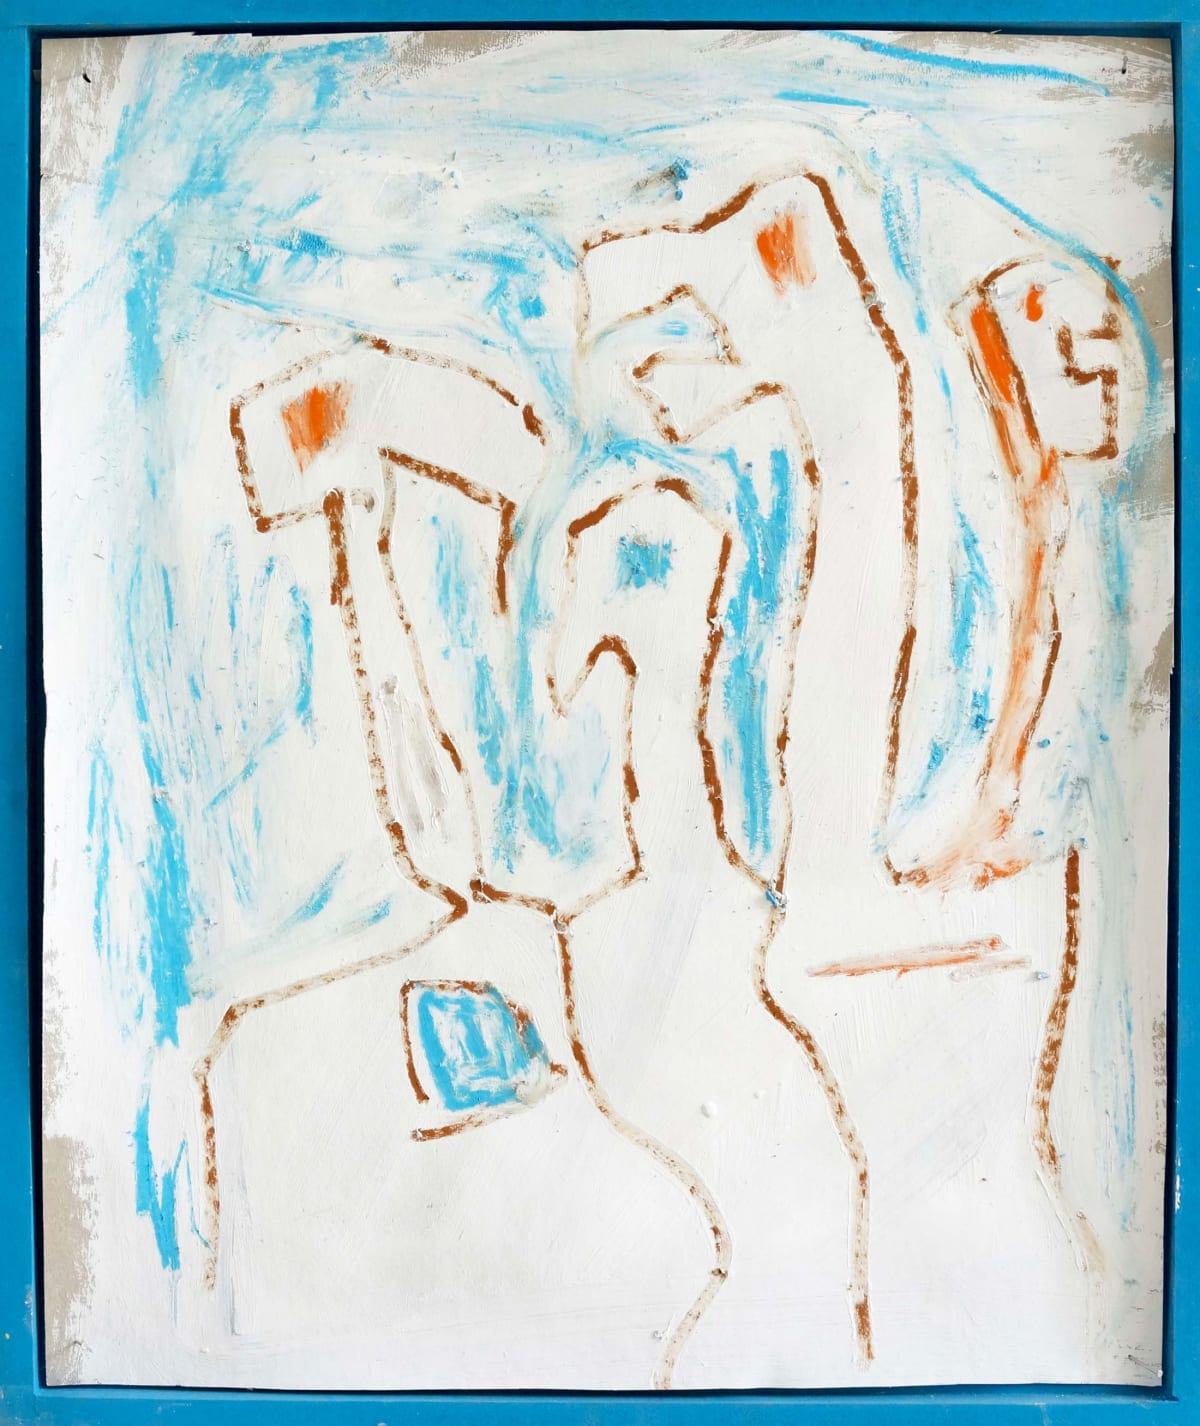 ernst koslitsch artwork shows a painting of a 4 headed creature framed in a blue wooden frame